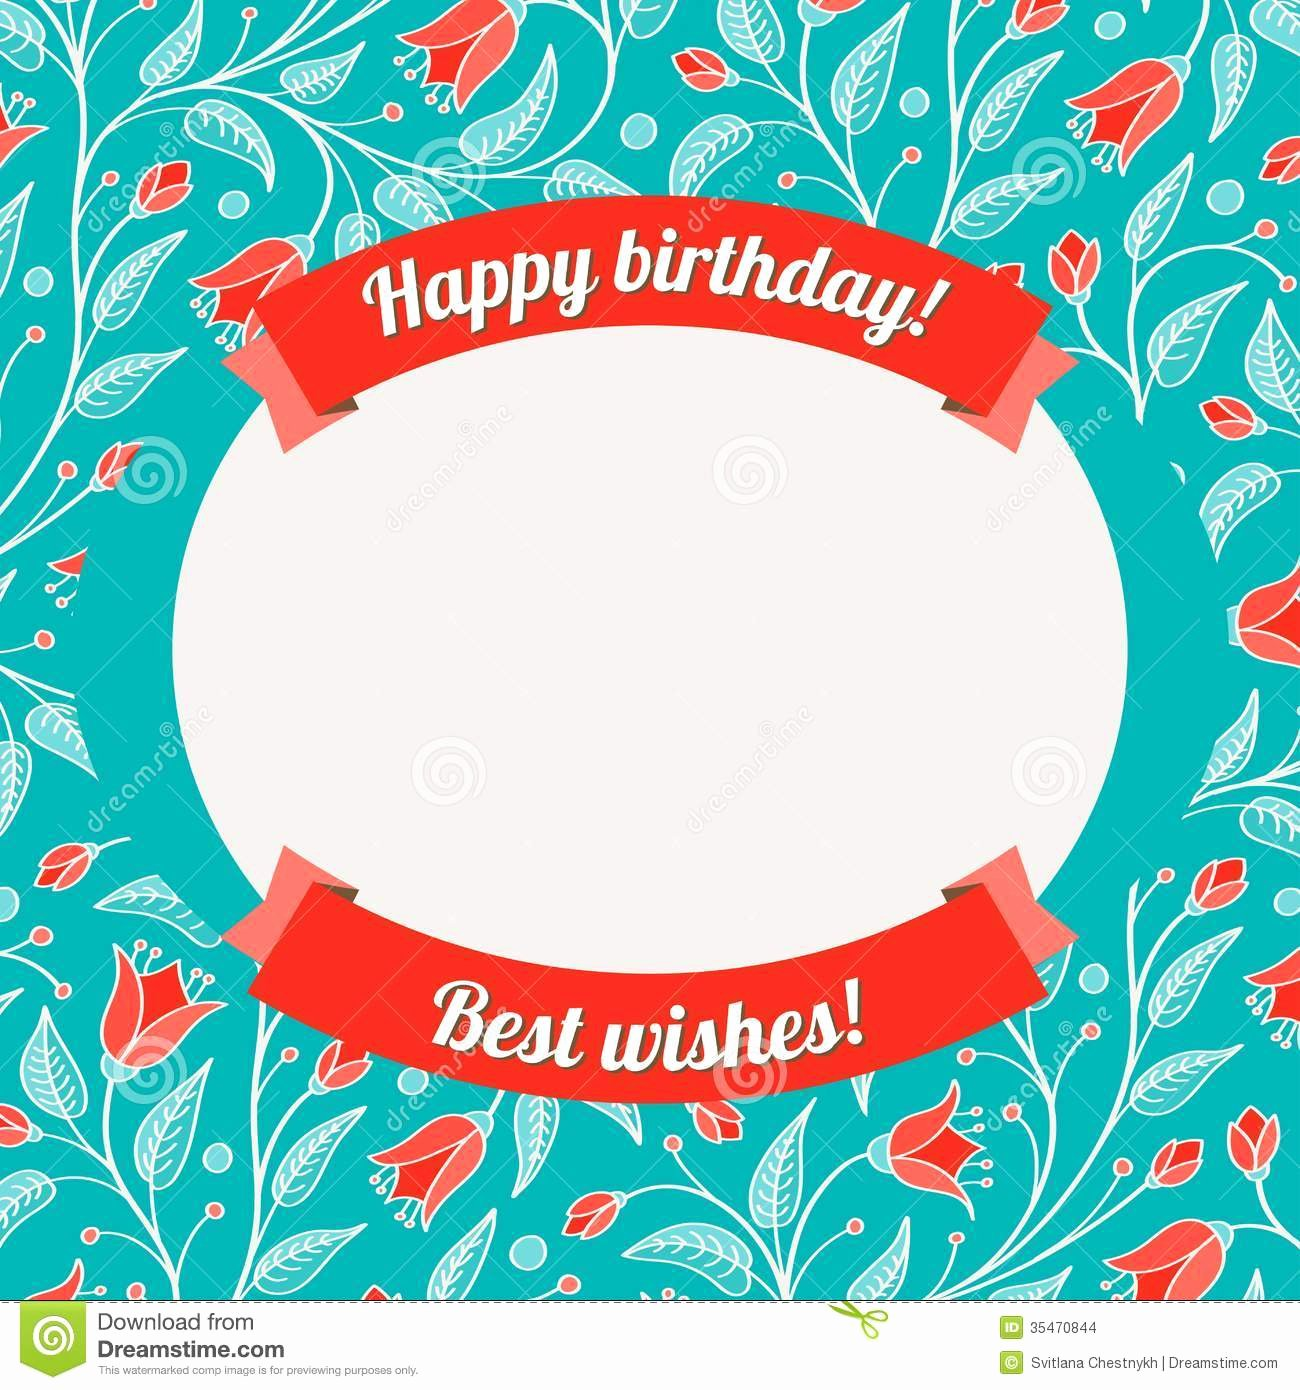 Ms Word Birthday Card Template Inspirational Card Birthday Card Template